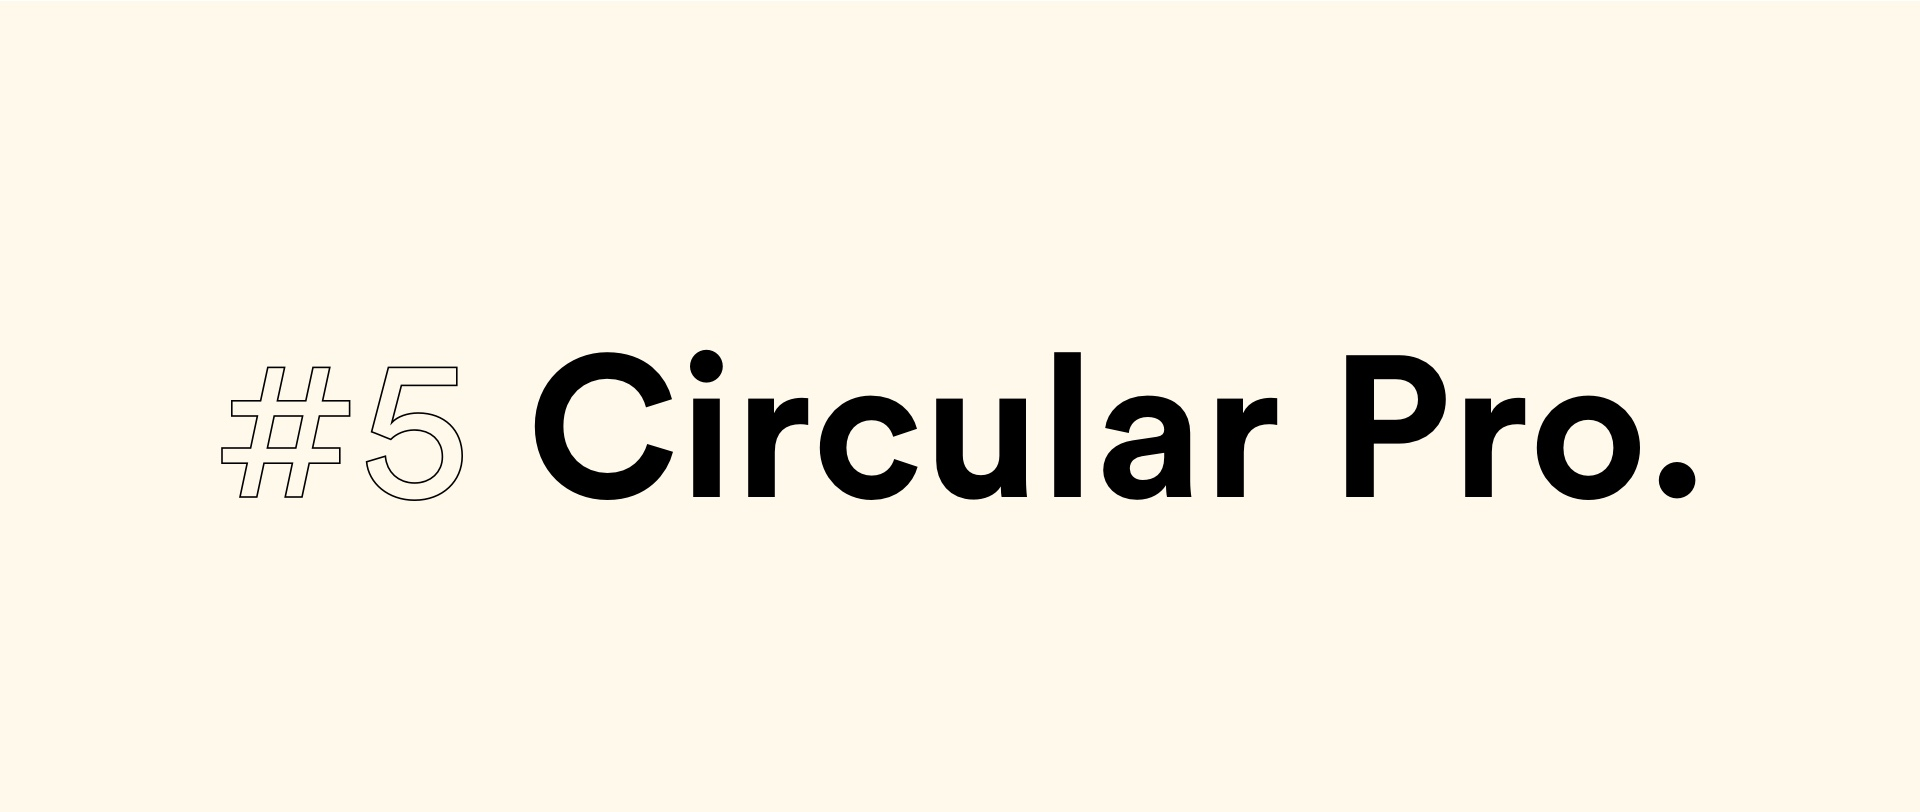 Circular Pro font | Top 5 fonts for 2020 by StanVision